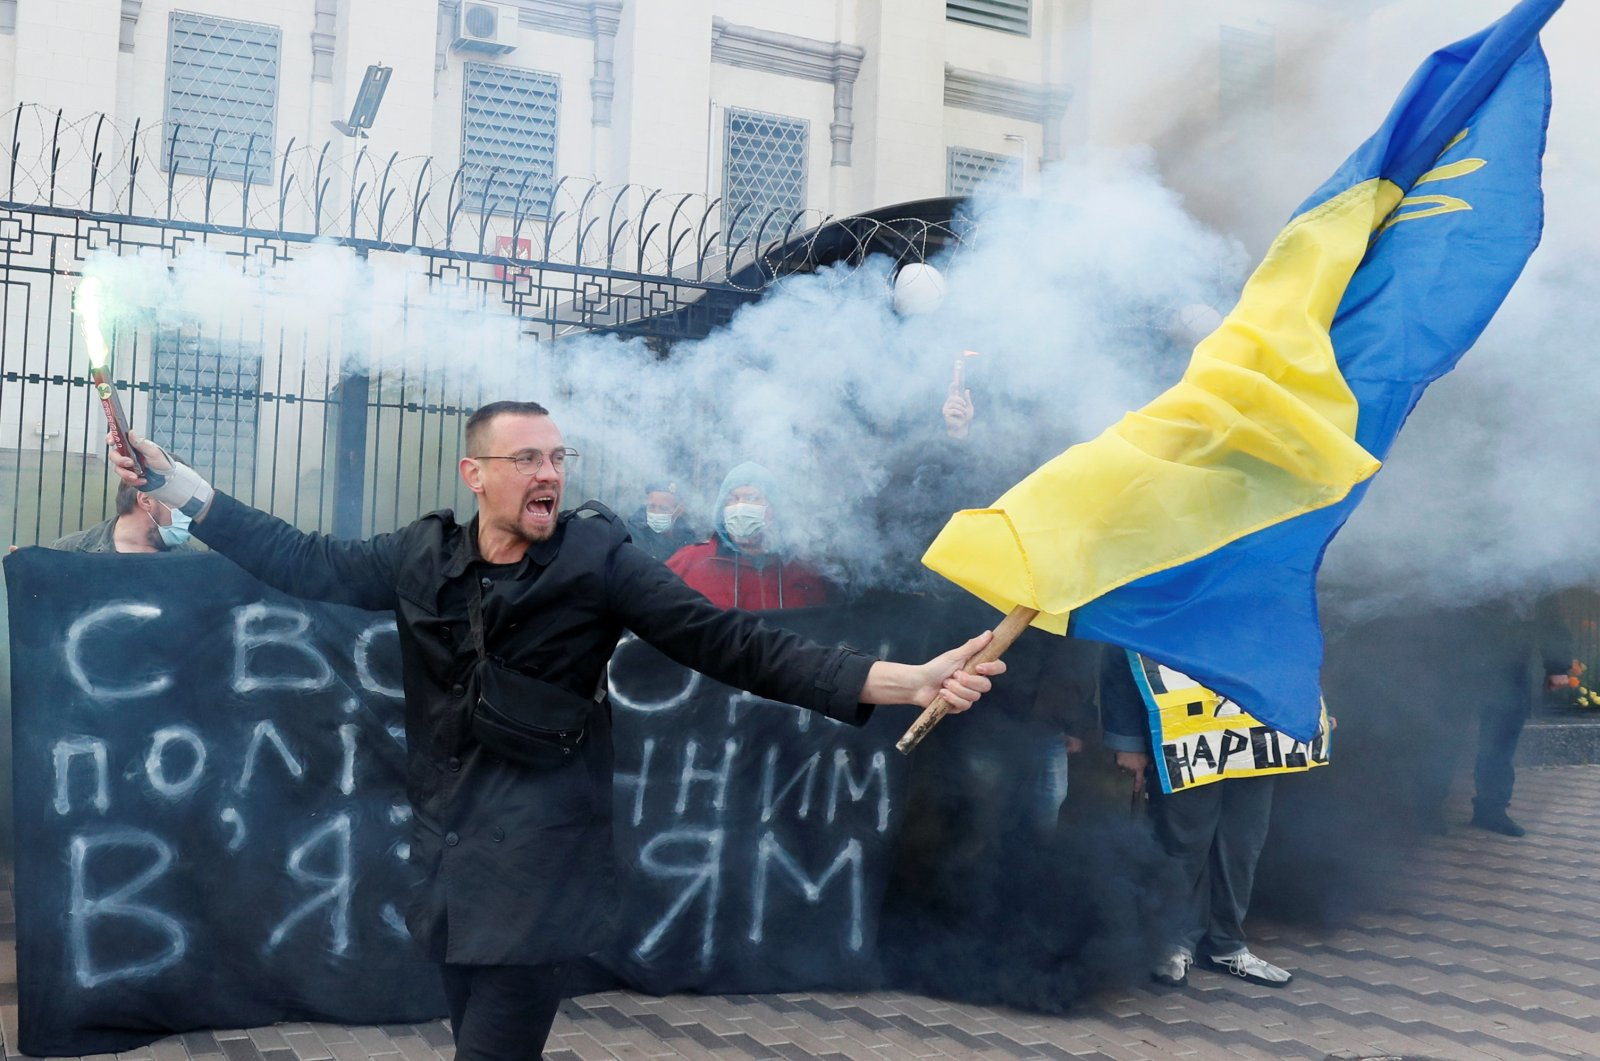 Human rights activists hold a rally in support of Ukrainian prisoners, whose arrests in Russia and Crimea were, according to the organizers, politically motivated, in front of the Russian Embassy in Kyiv, Ukraine, Sept. 29, 2021. (REUTERS Photo)